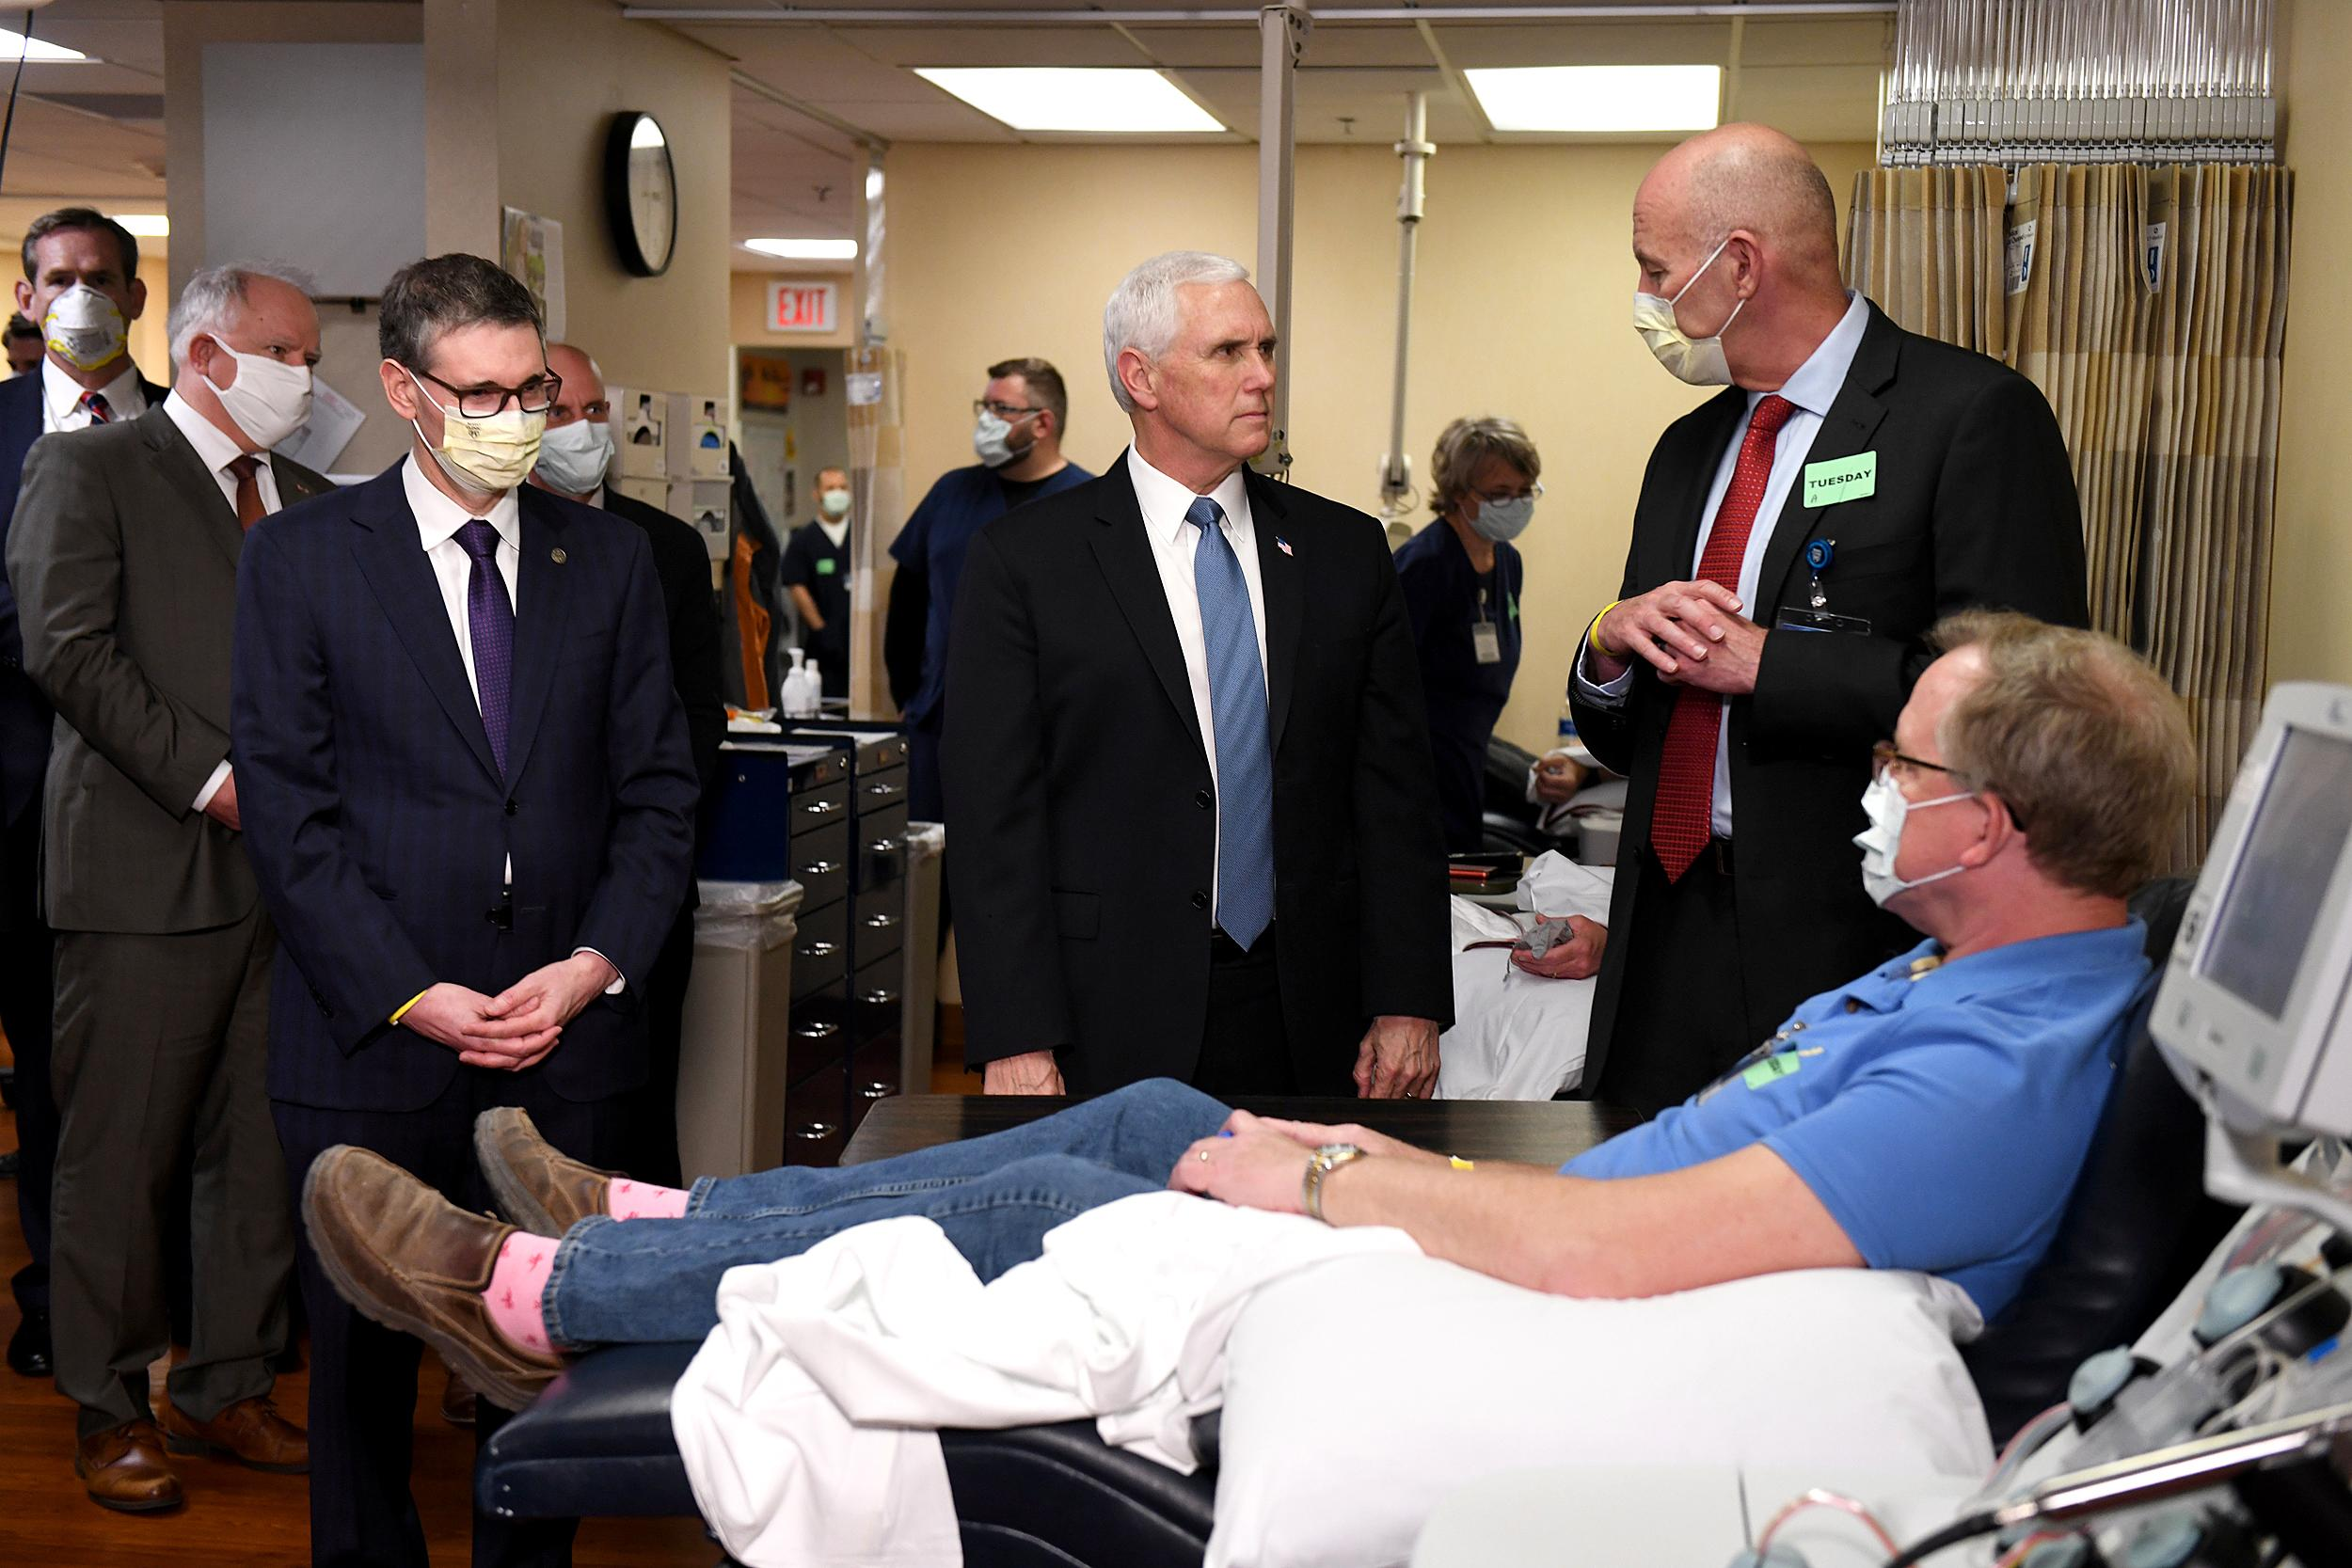 David Letterman Accuses Pence 'Taunting' Coronavirus Patients by Not Wearing Mask